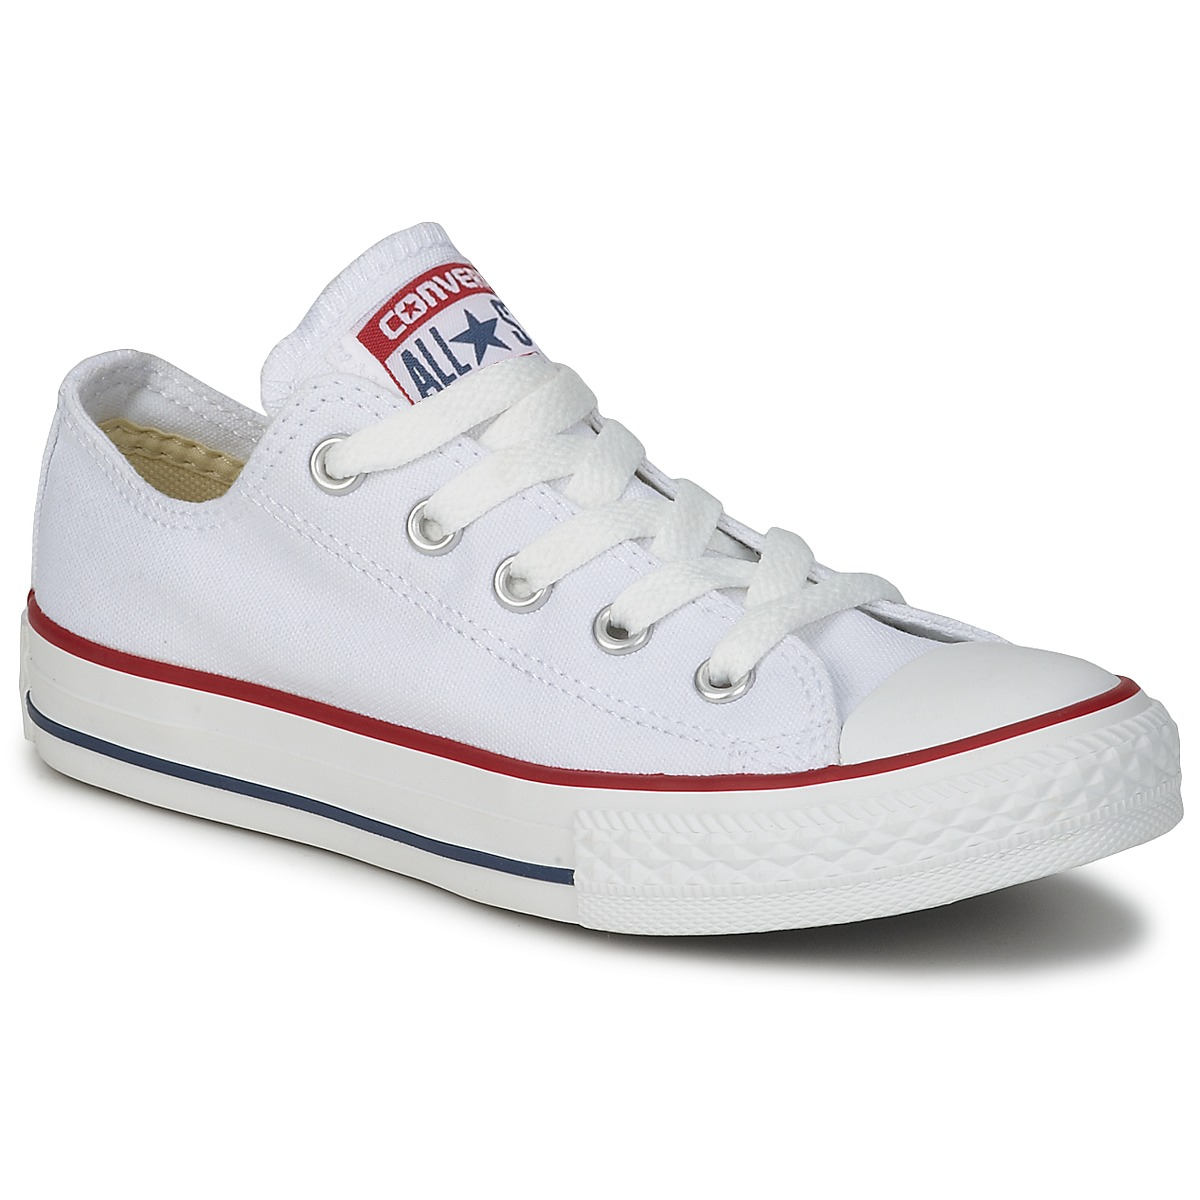 converse-all-star-bajas-mujer-hombre.jpg